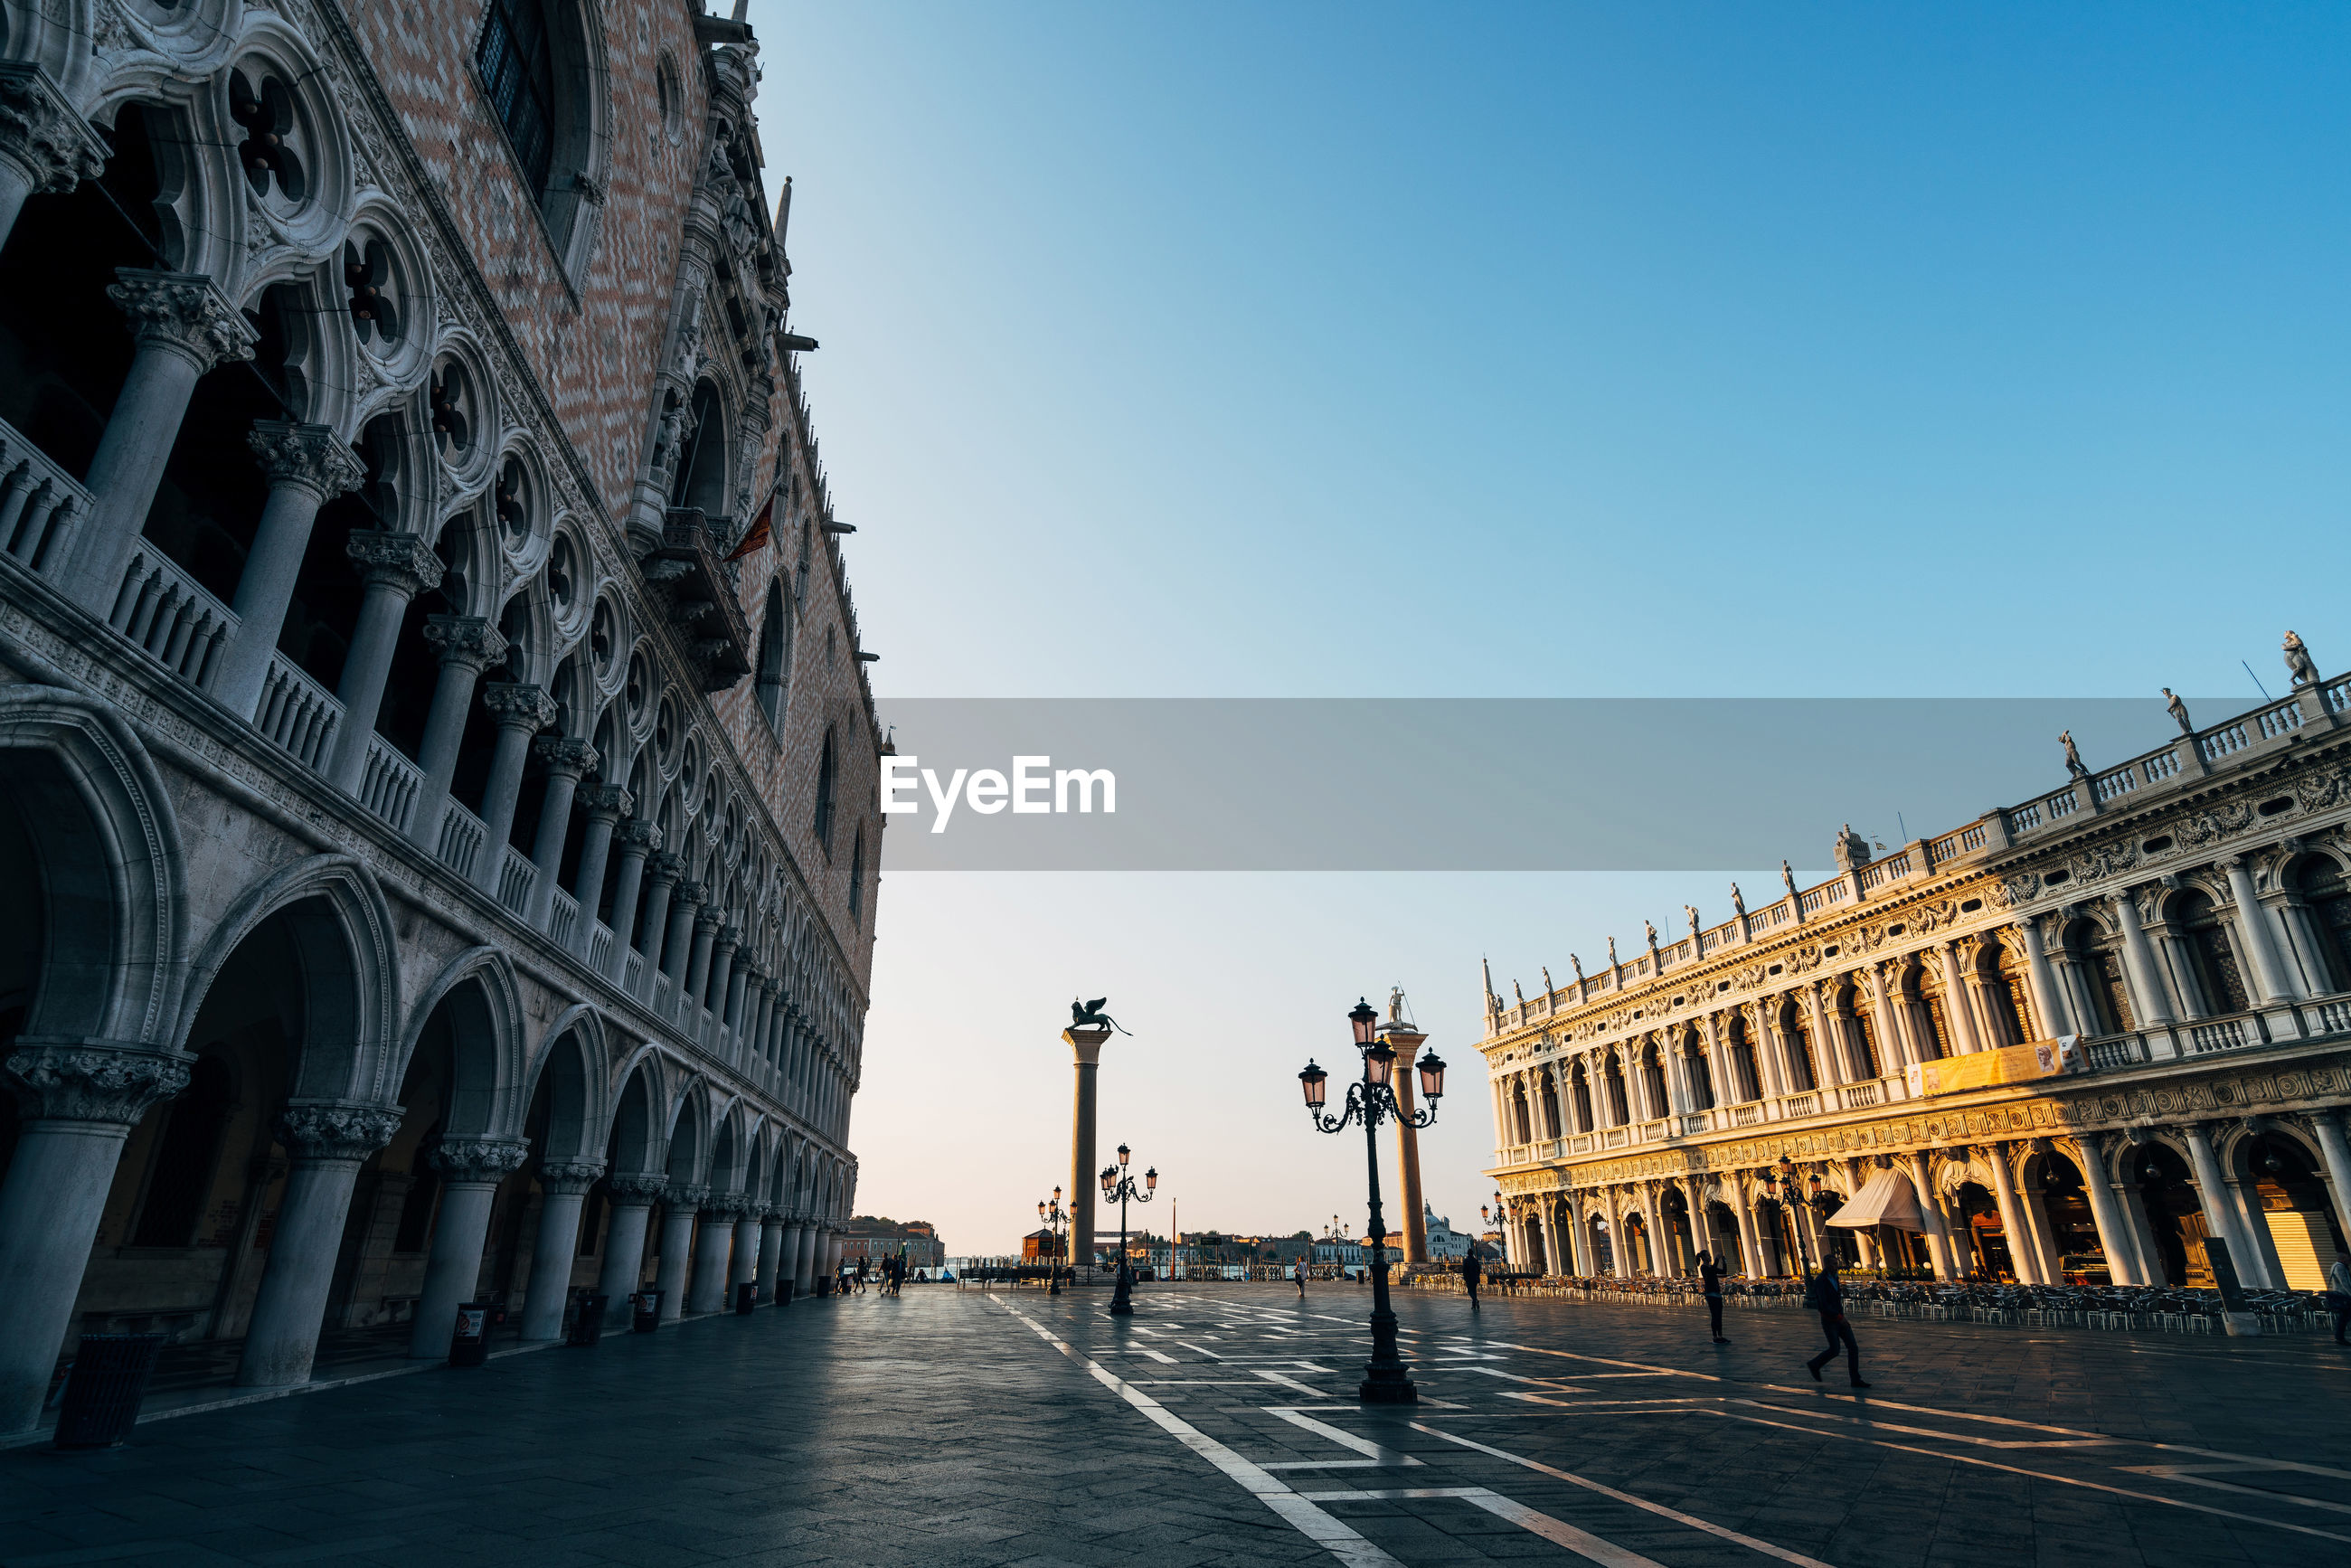 Piazza san marco against clear sky in city